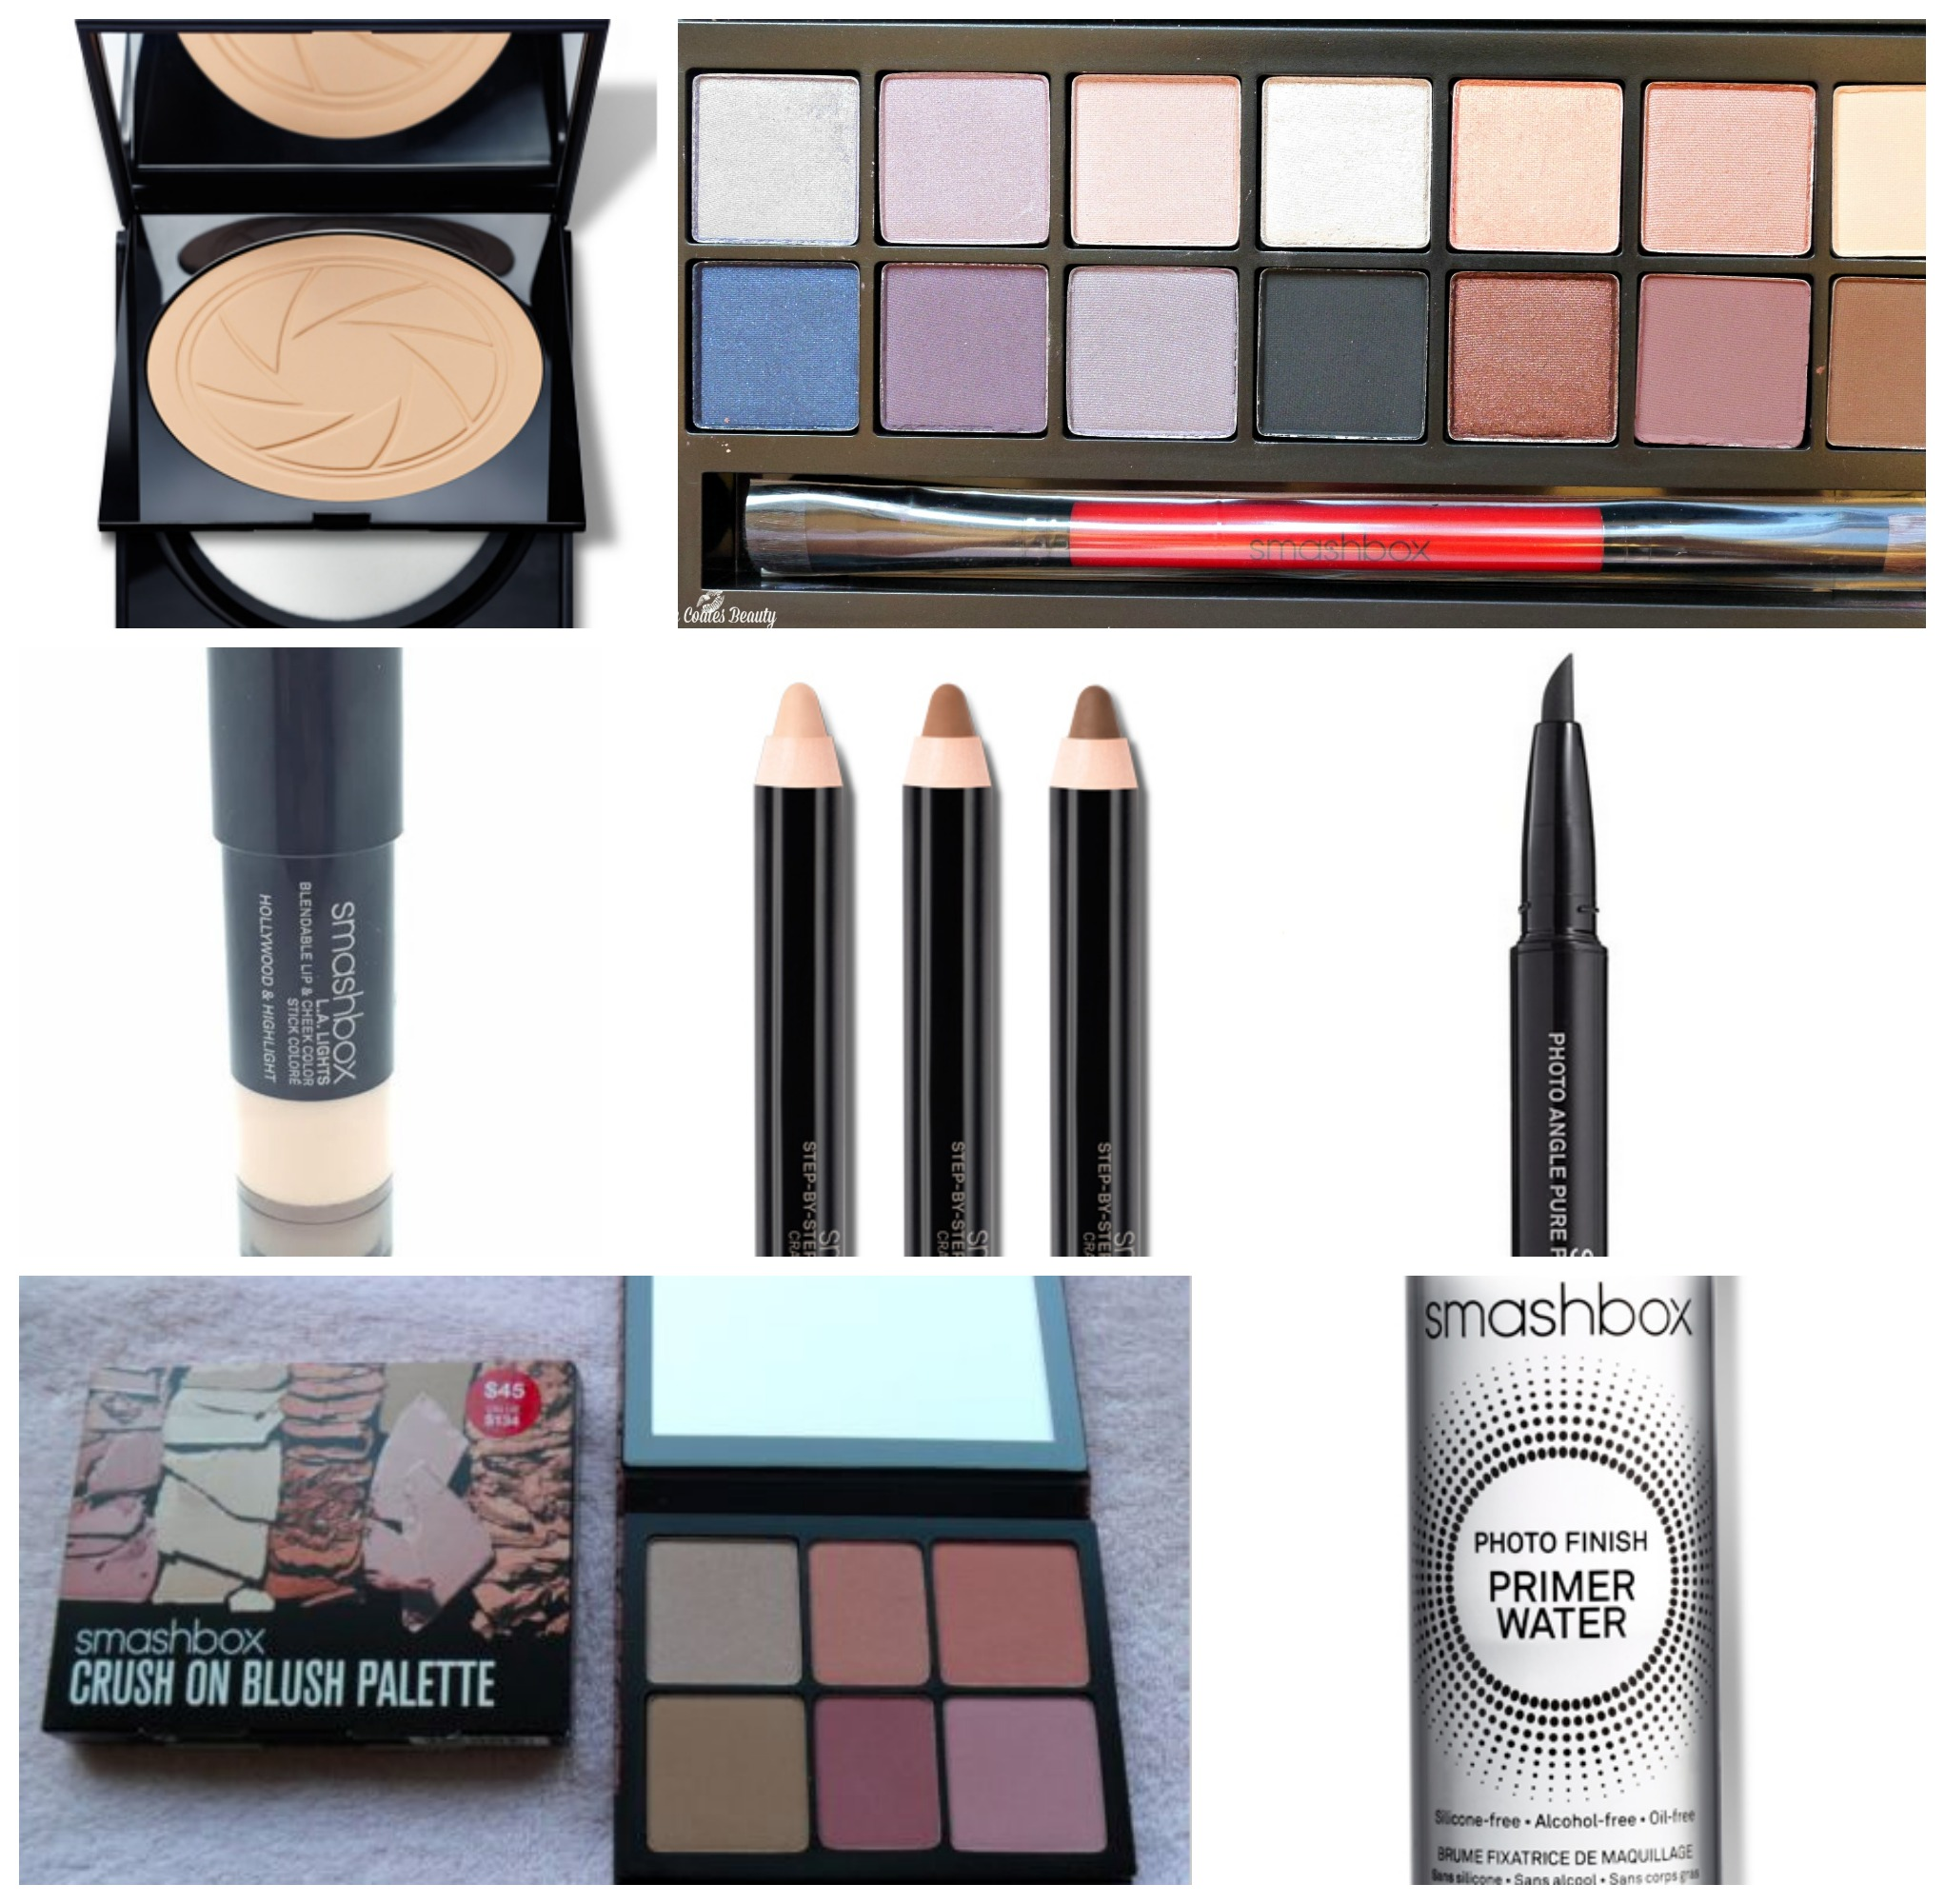 New In Beauty: Smashbox New & Upcoming Products For Spring/Summer 2015